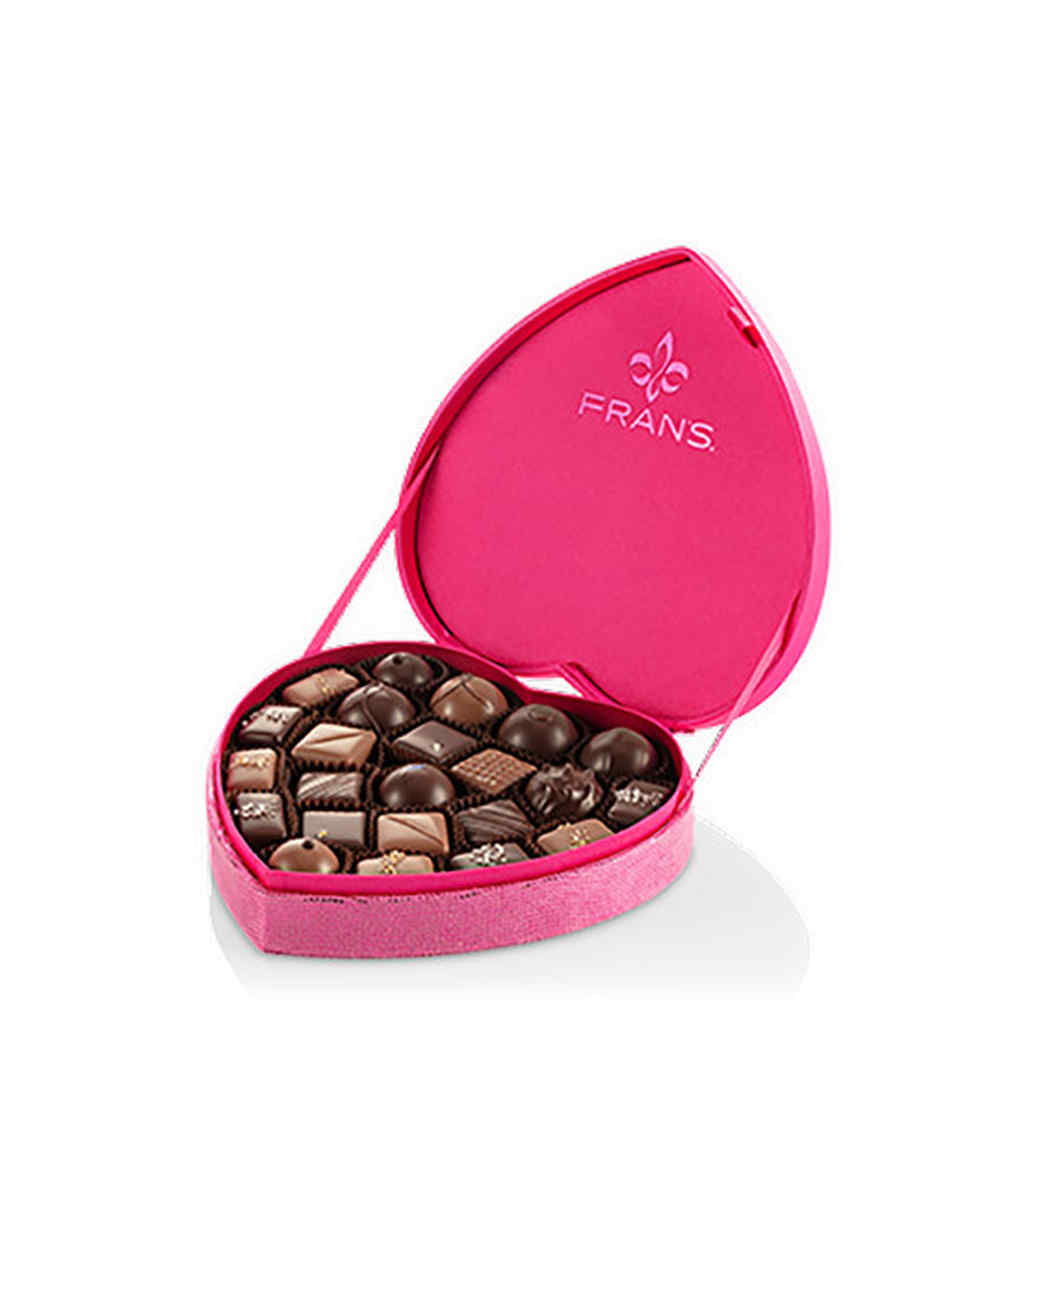 pink heart shaped chocolate box frans